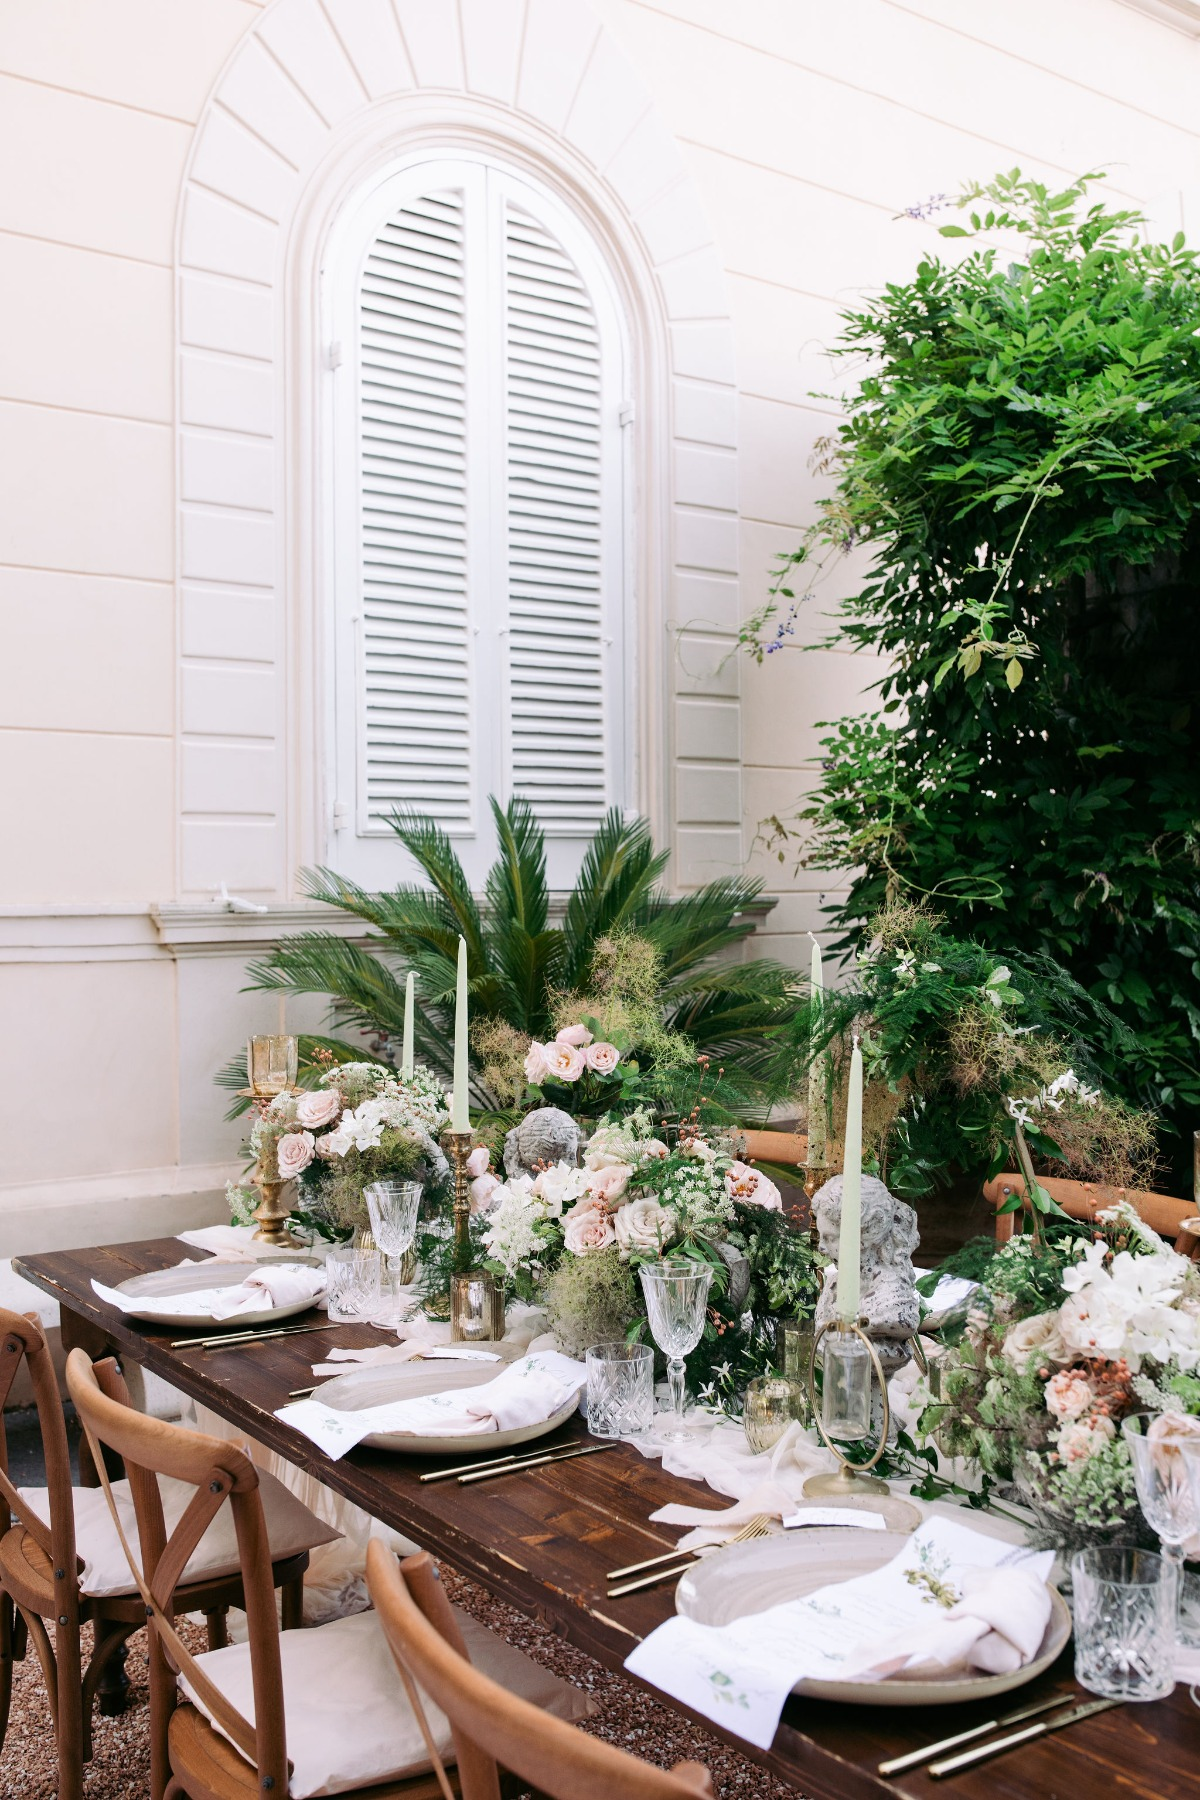 This Styled Shoot in Sorrento, Italy Highlights the Beauty of a Bride in Vein With an Iconic Botticelli Painting